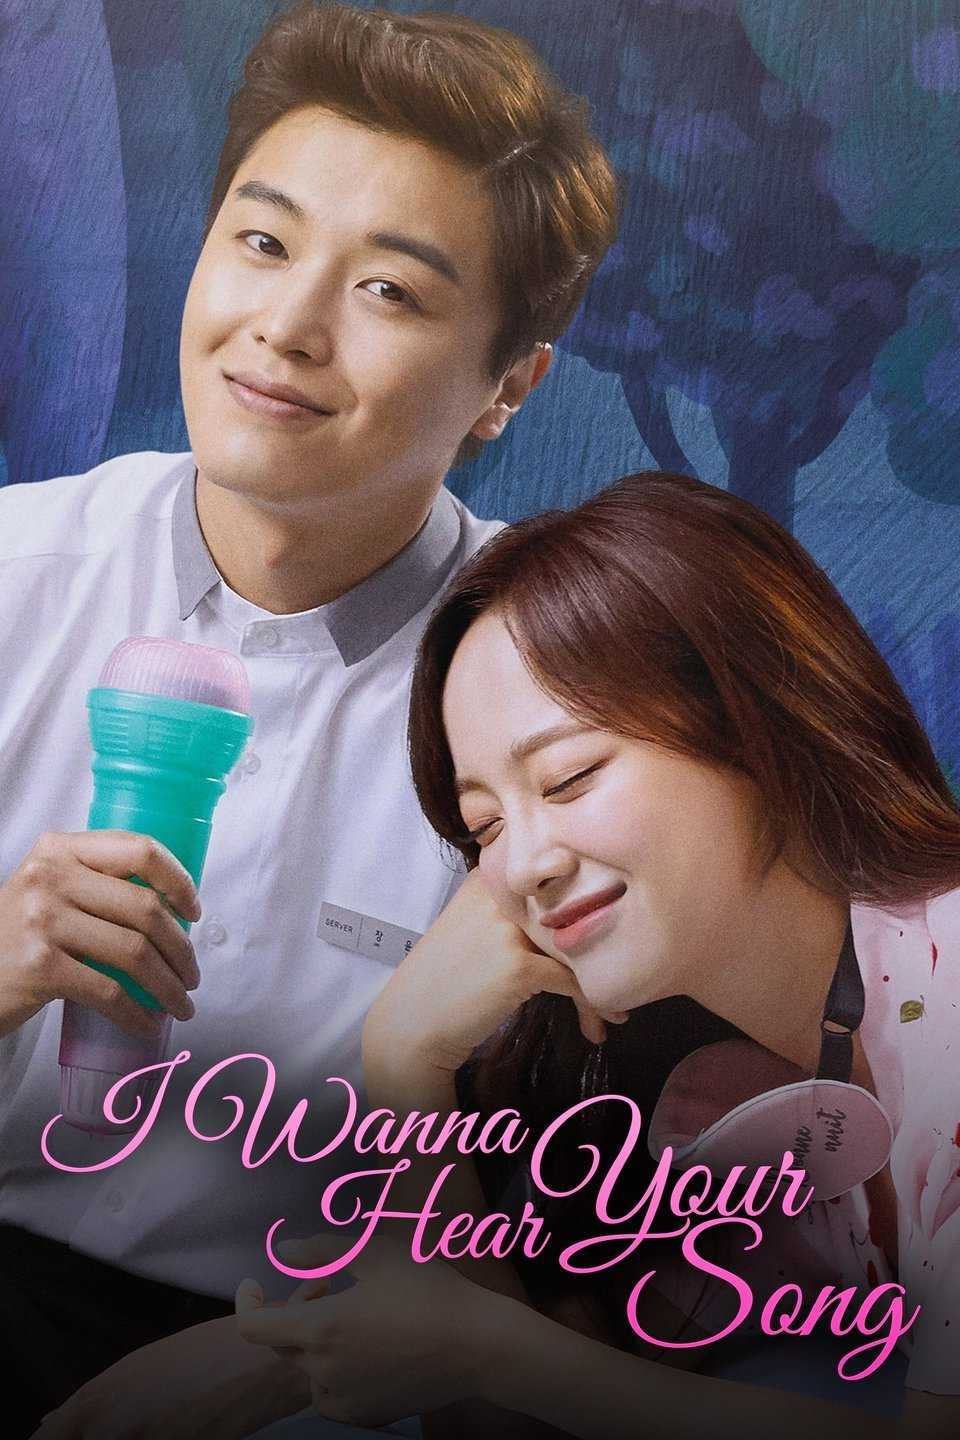 i-wanna-hear-your-song-ep-1-32-ซับไทย